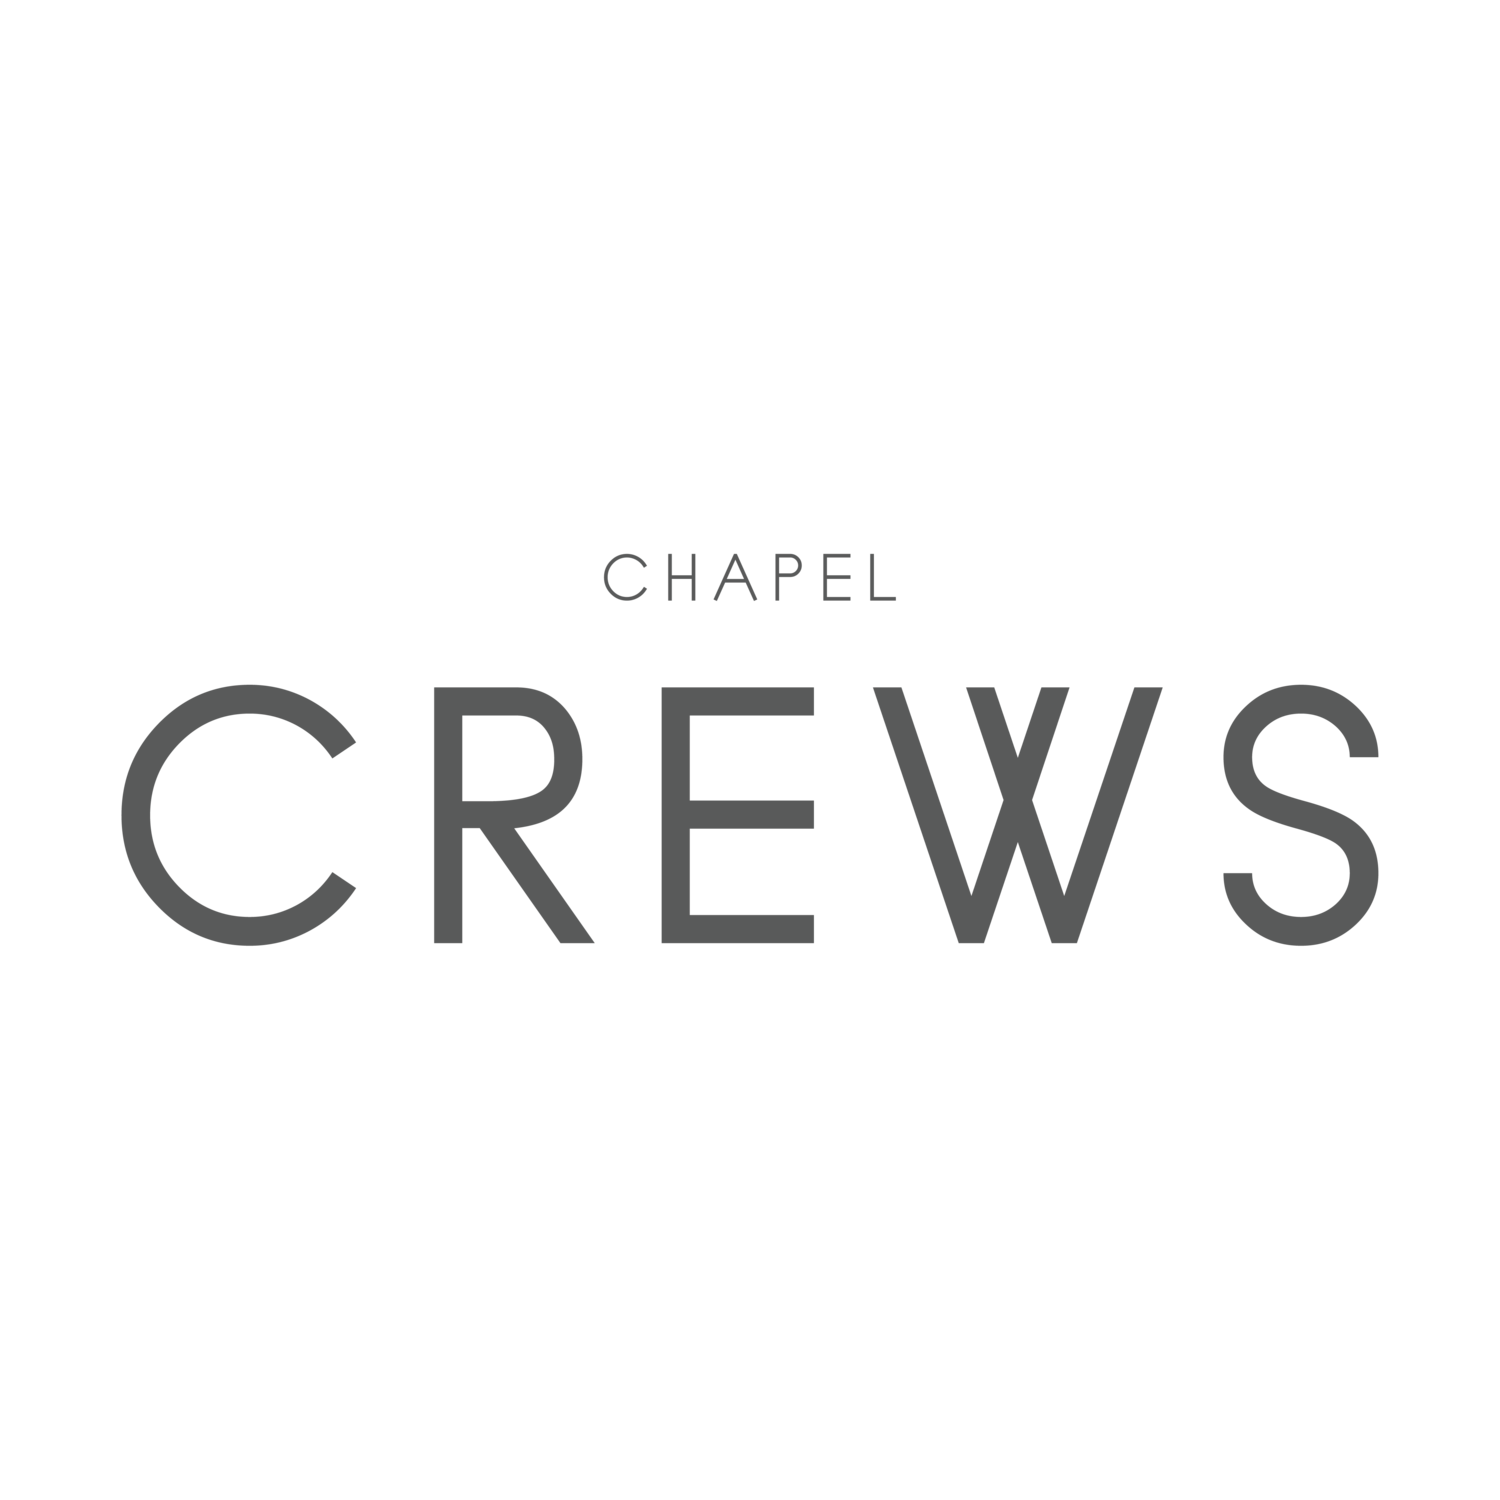 Chapel+Crews+-+Center+Aligned+Version-04.png